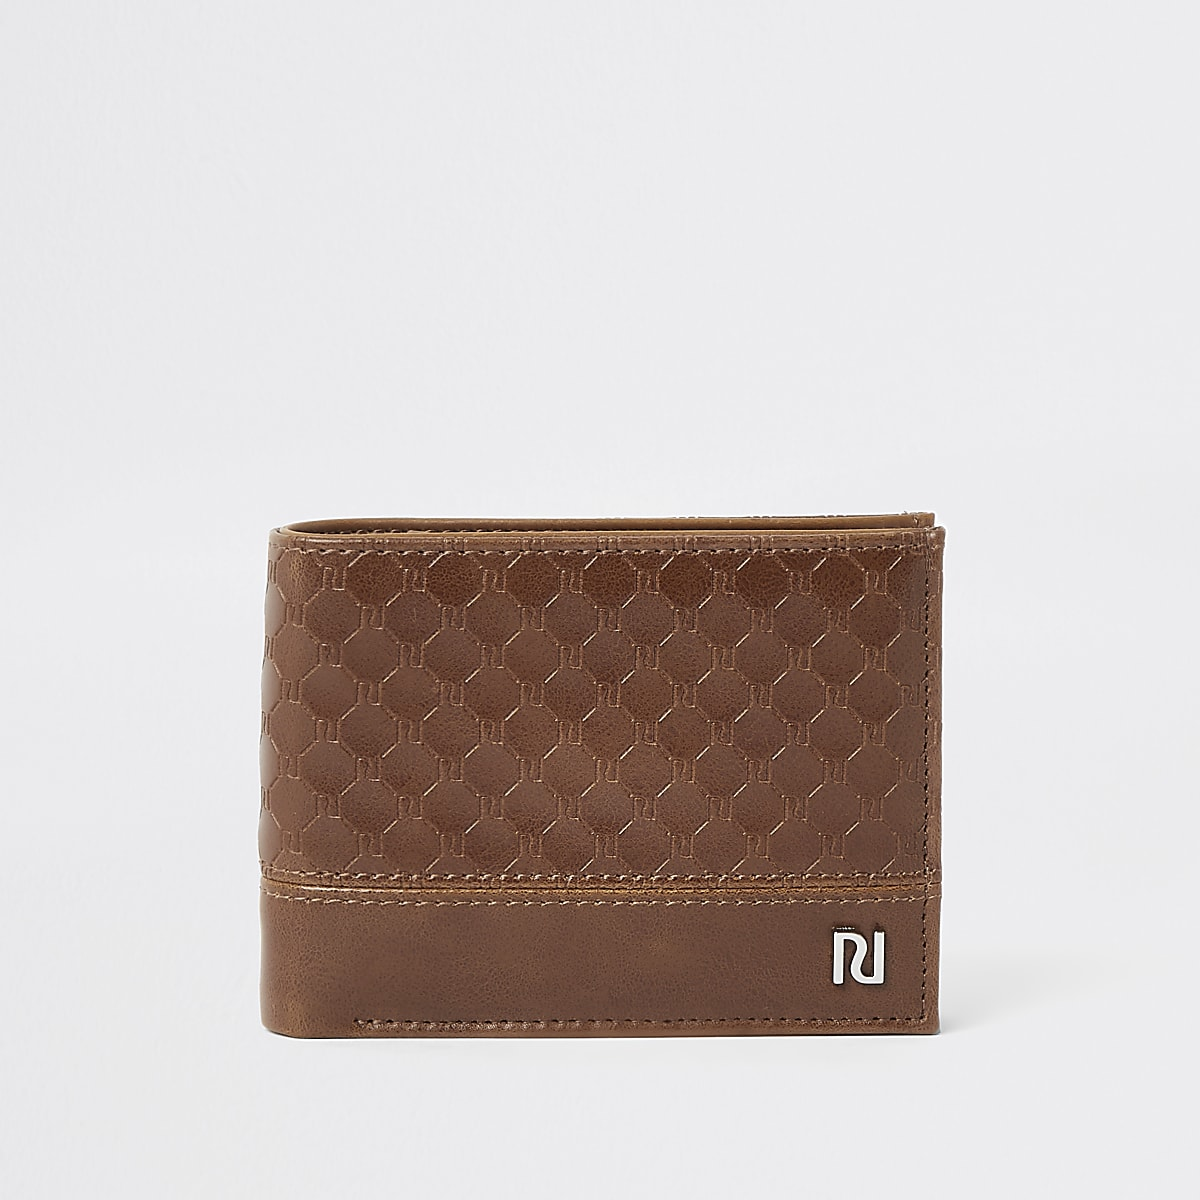 Light brown RI monogram wallet